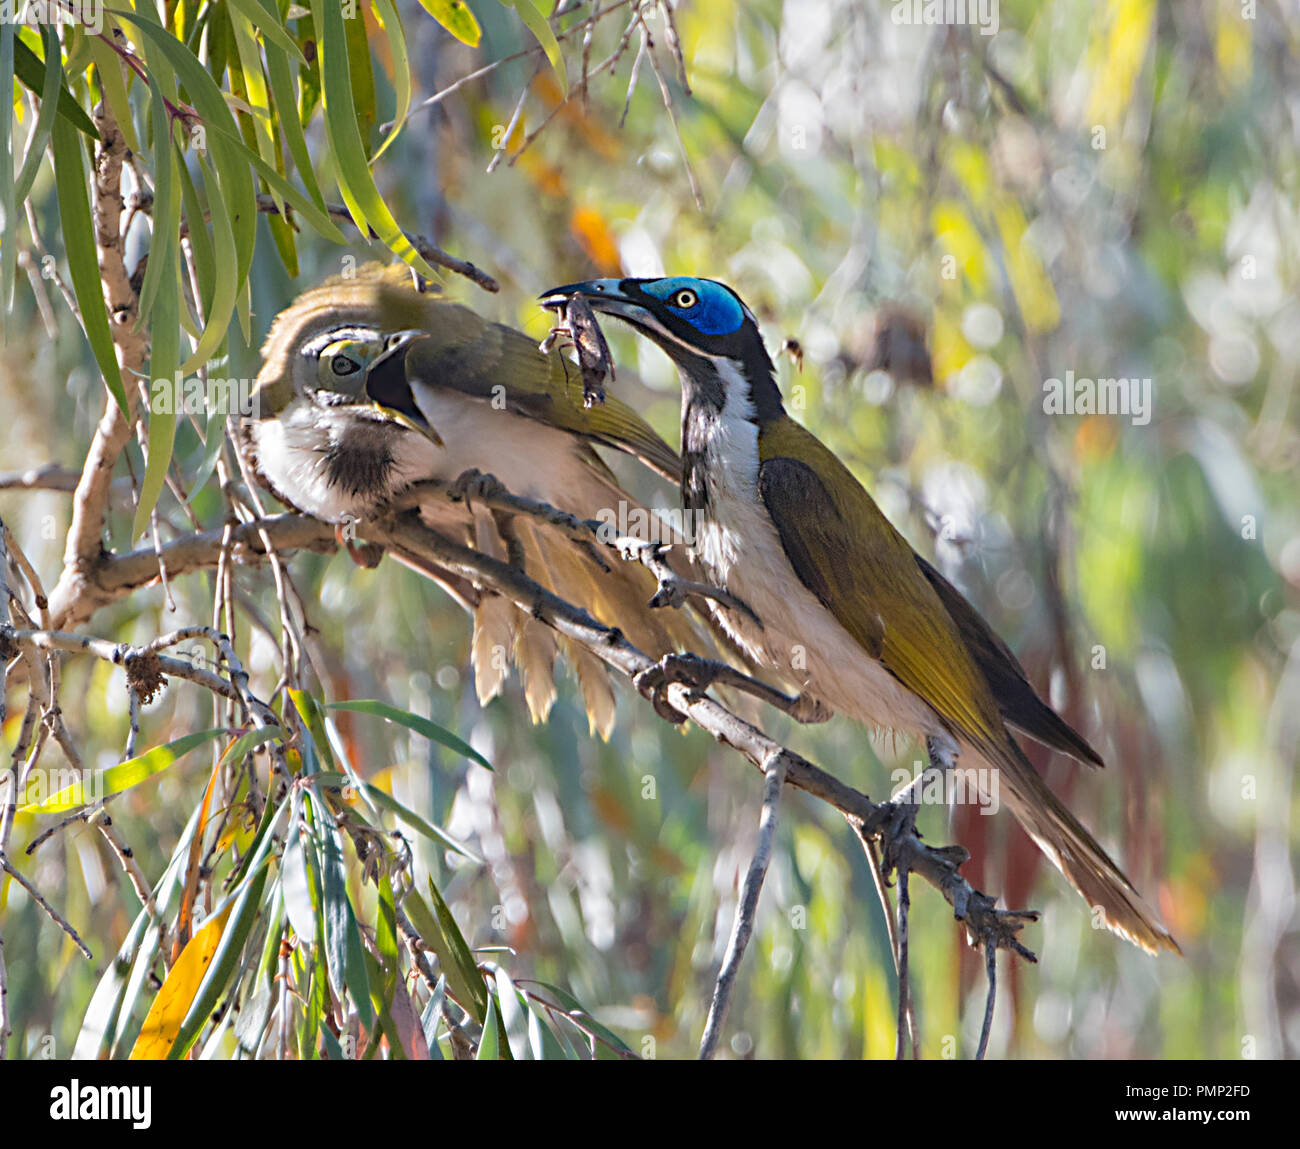 blue-faced-honeyeater-entomyzon-cyanotis